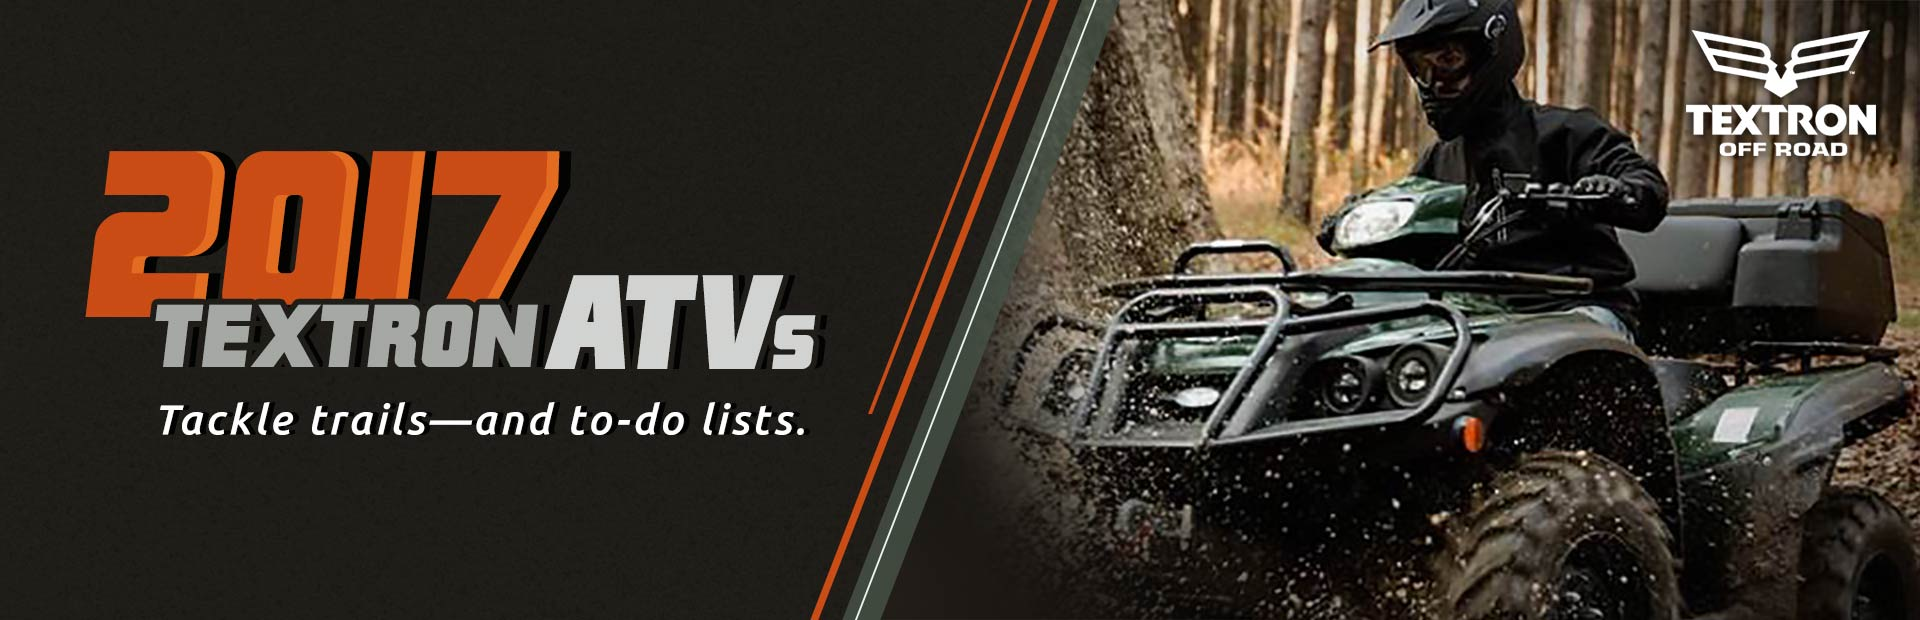 2017 Textron ATVs: Click here to view the models.